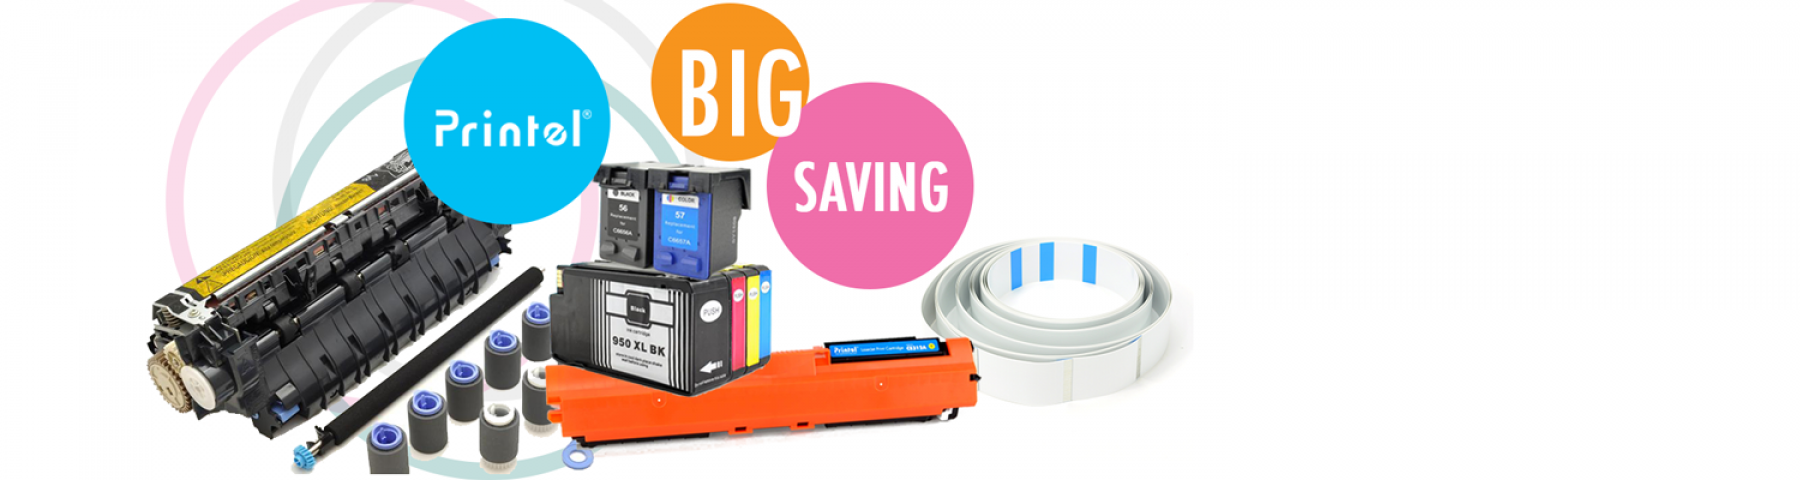 Save up to 40% on Printer Ink Cartridges and Toner Cartridges